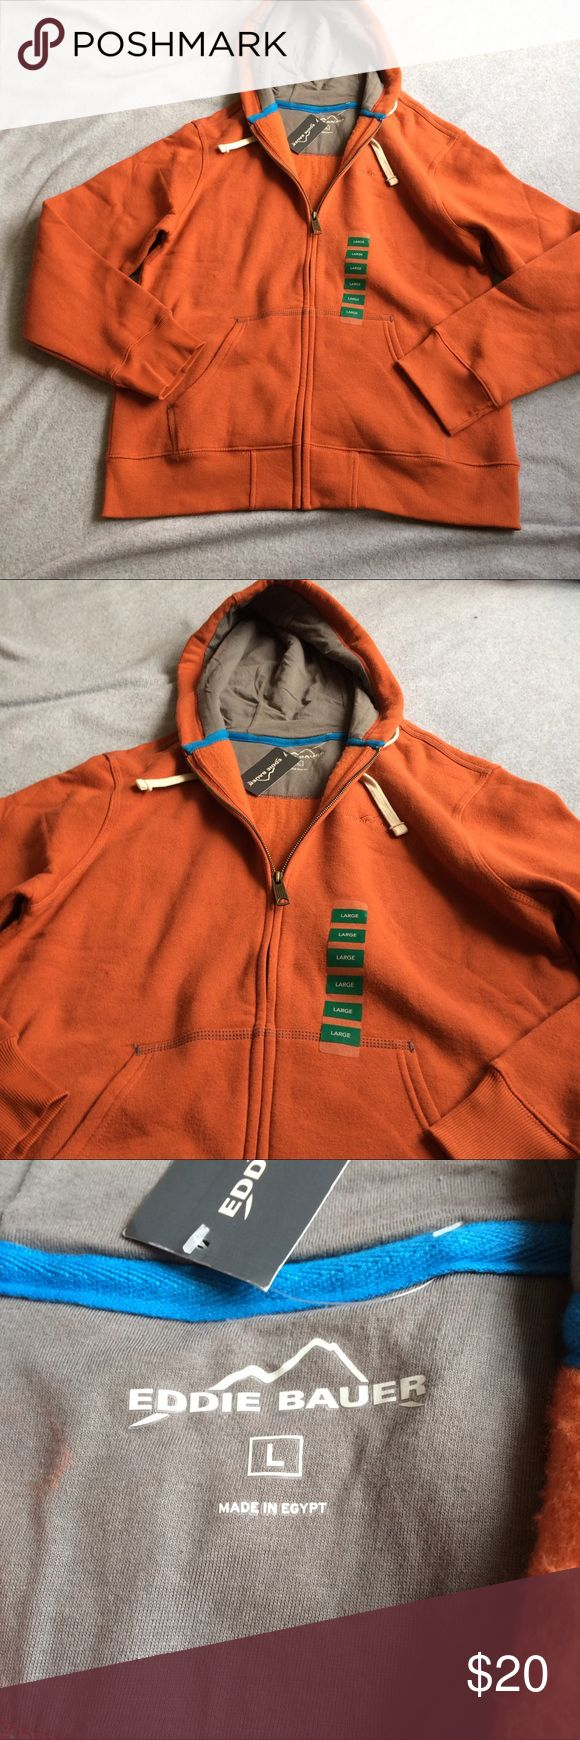 Eddie Bauer orange zip up hoodie Item is in great condition stored in smoke free home. No rips, tears, holes, snags, or stains. Eddie Bauer Sweaters Zip Up